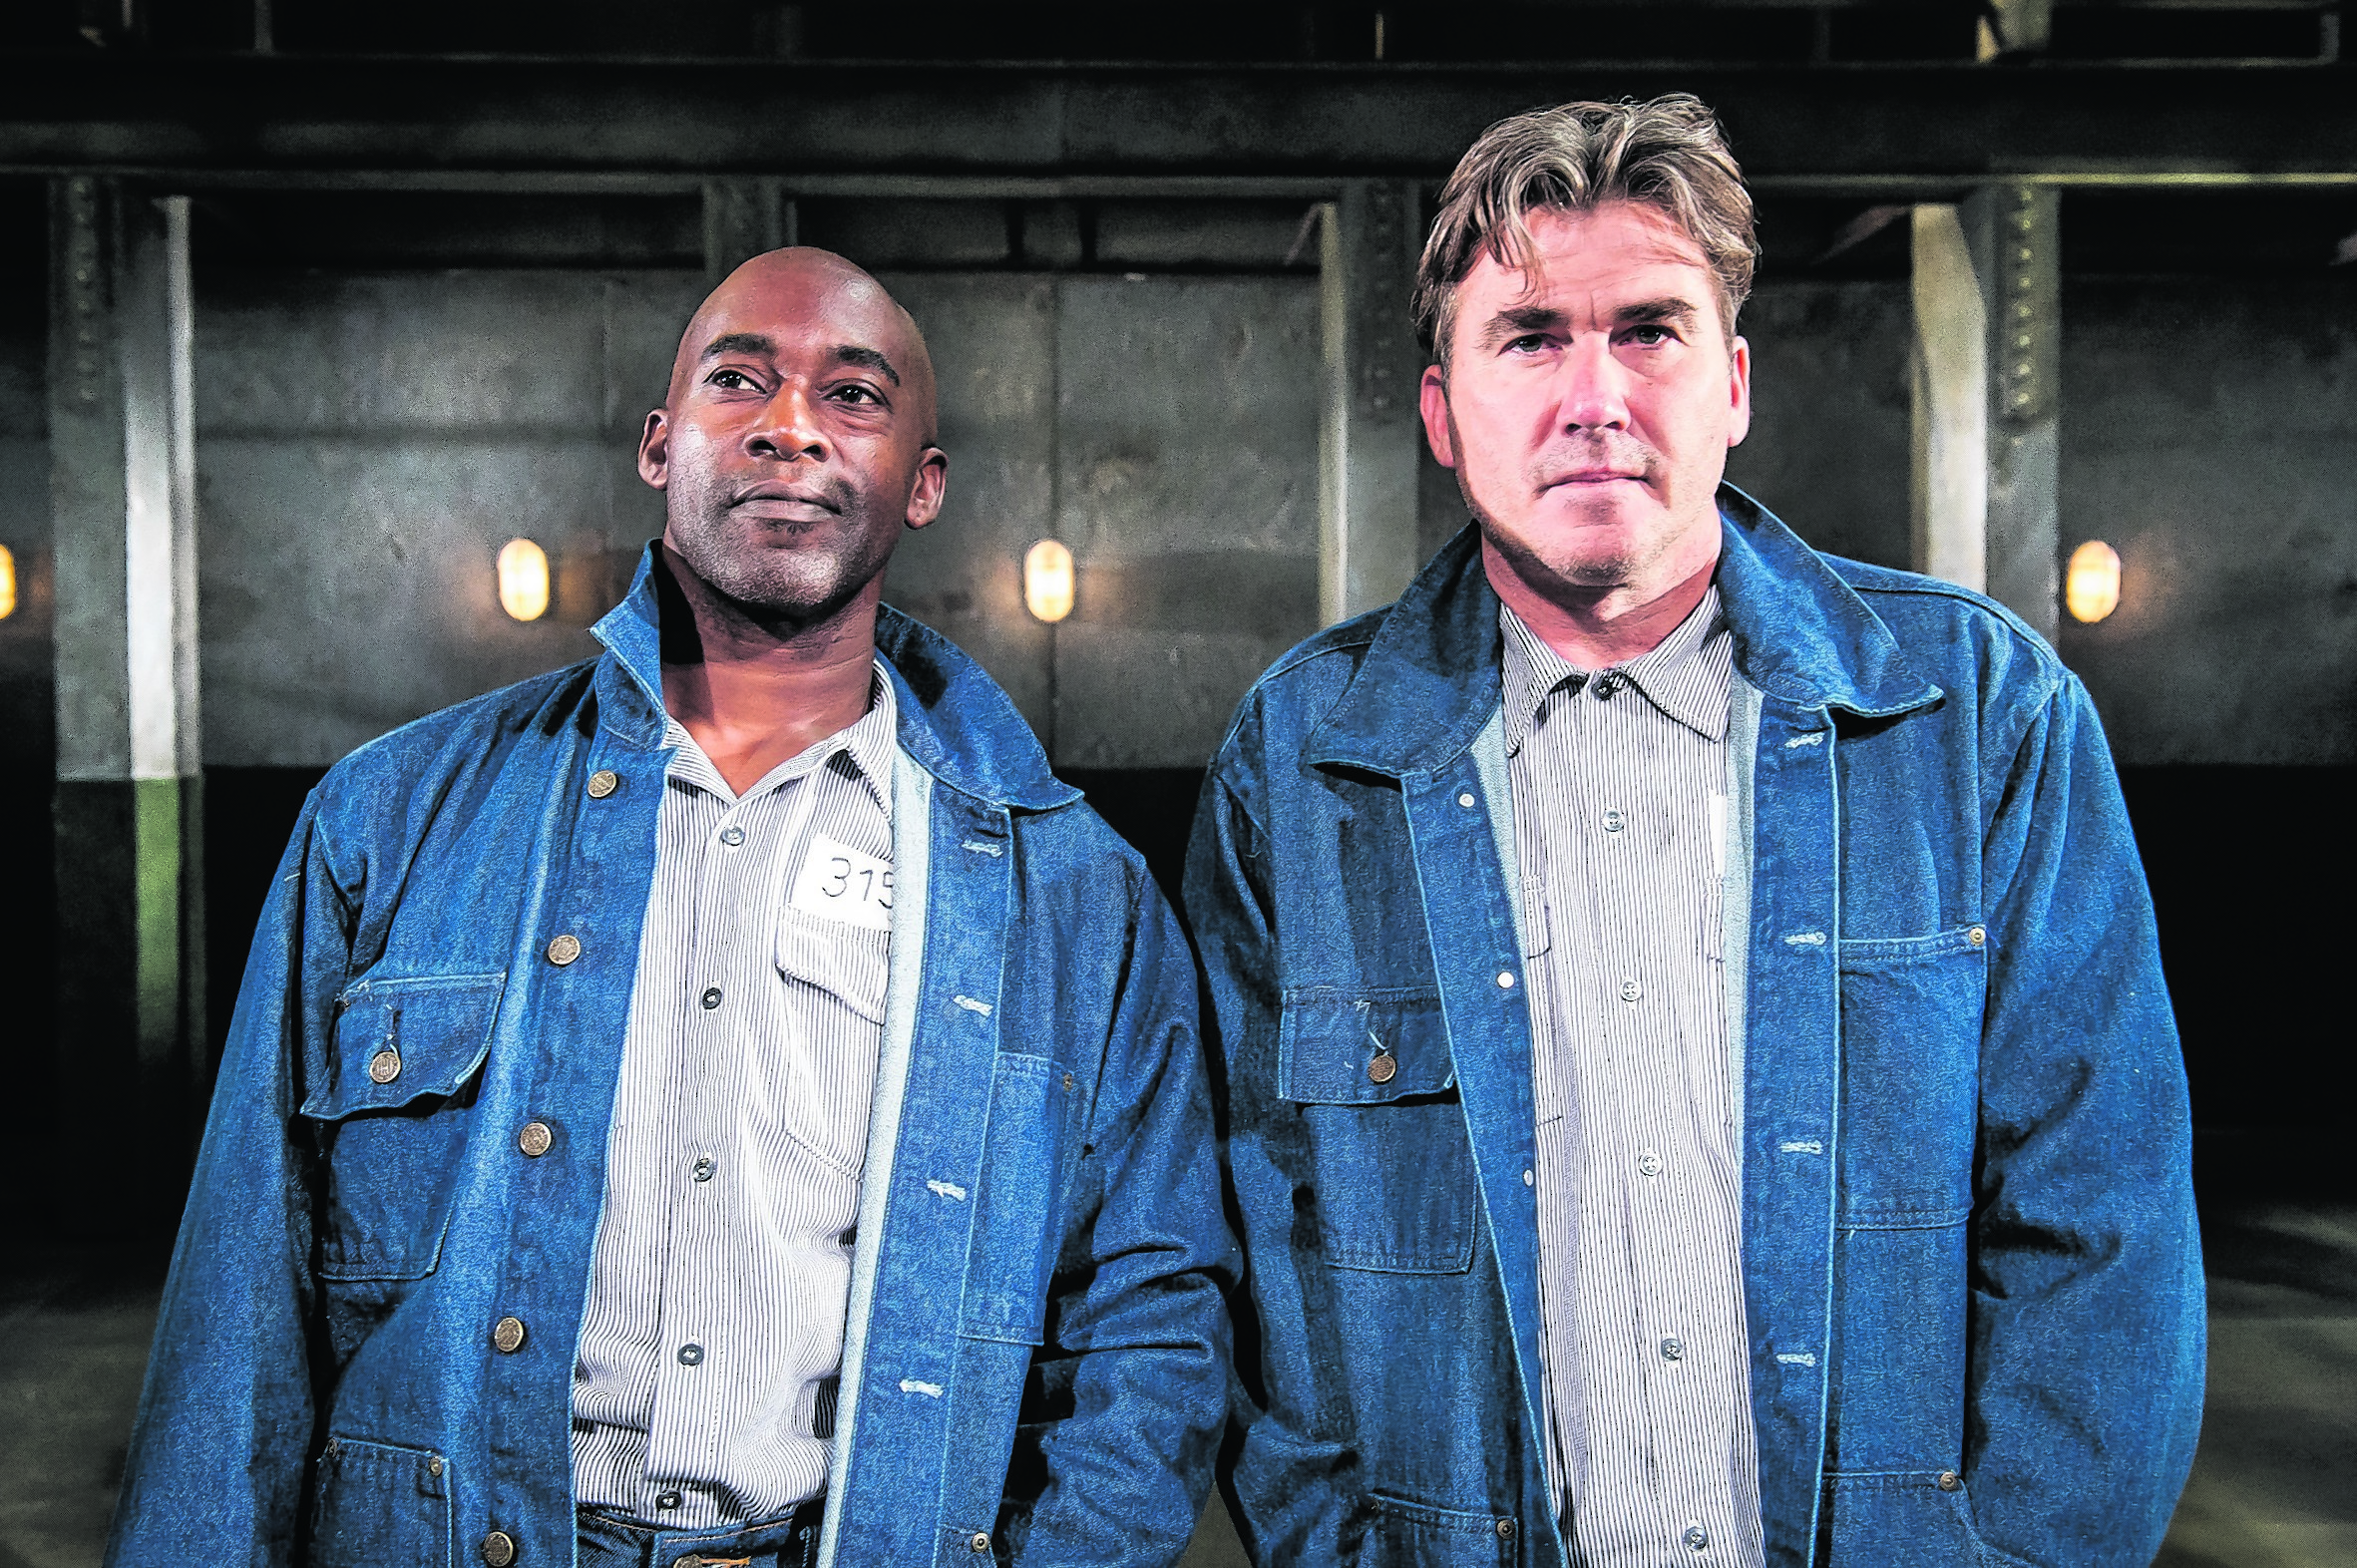 Patrick Robinson, left, and Ian Kelsey take on the iconic roles played by Morgan Freeman and Tim Robbins in the stage adaptation of The Shawhsank Redemption. Photo: Mark Yeoman